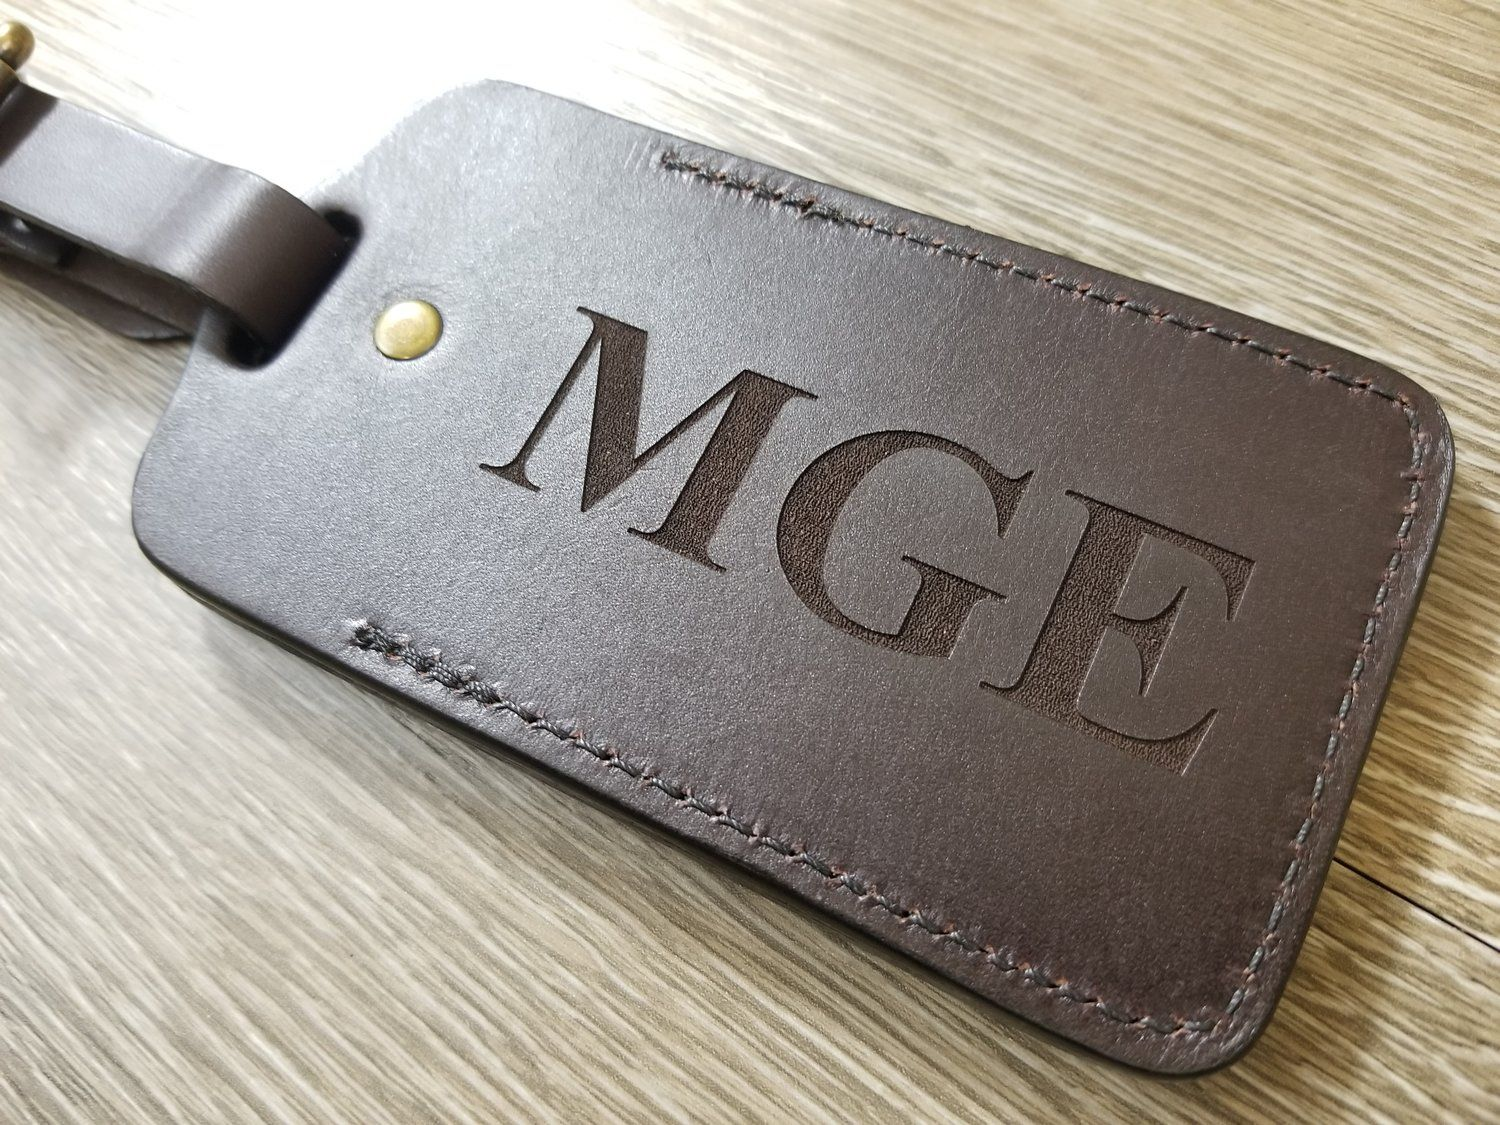 Luggage Tag Custom Initial Black Leather Customized Luggage Tag Wedding Favor Travel Accessories Personalized Leather Gift for Couples